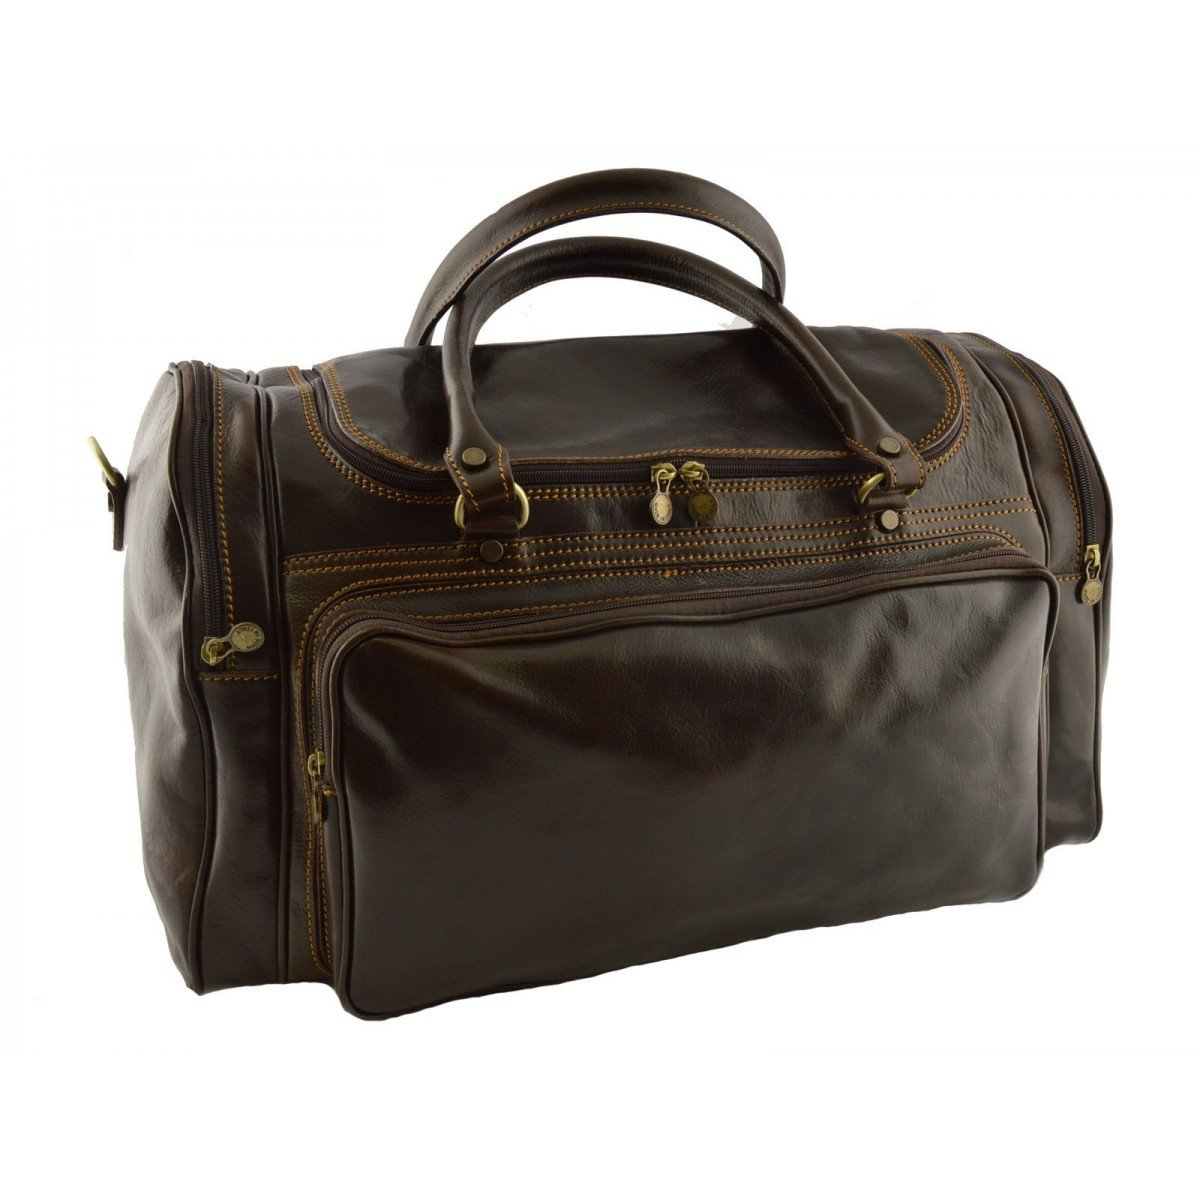 Made In Italy Leather Travel Bag Color Dark Brown - Travel Bag B014T6HWOW